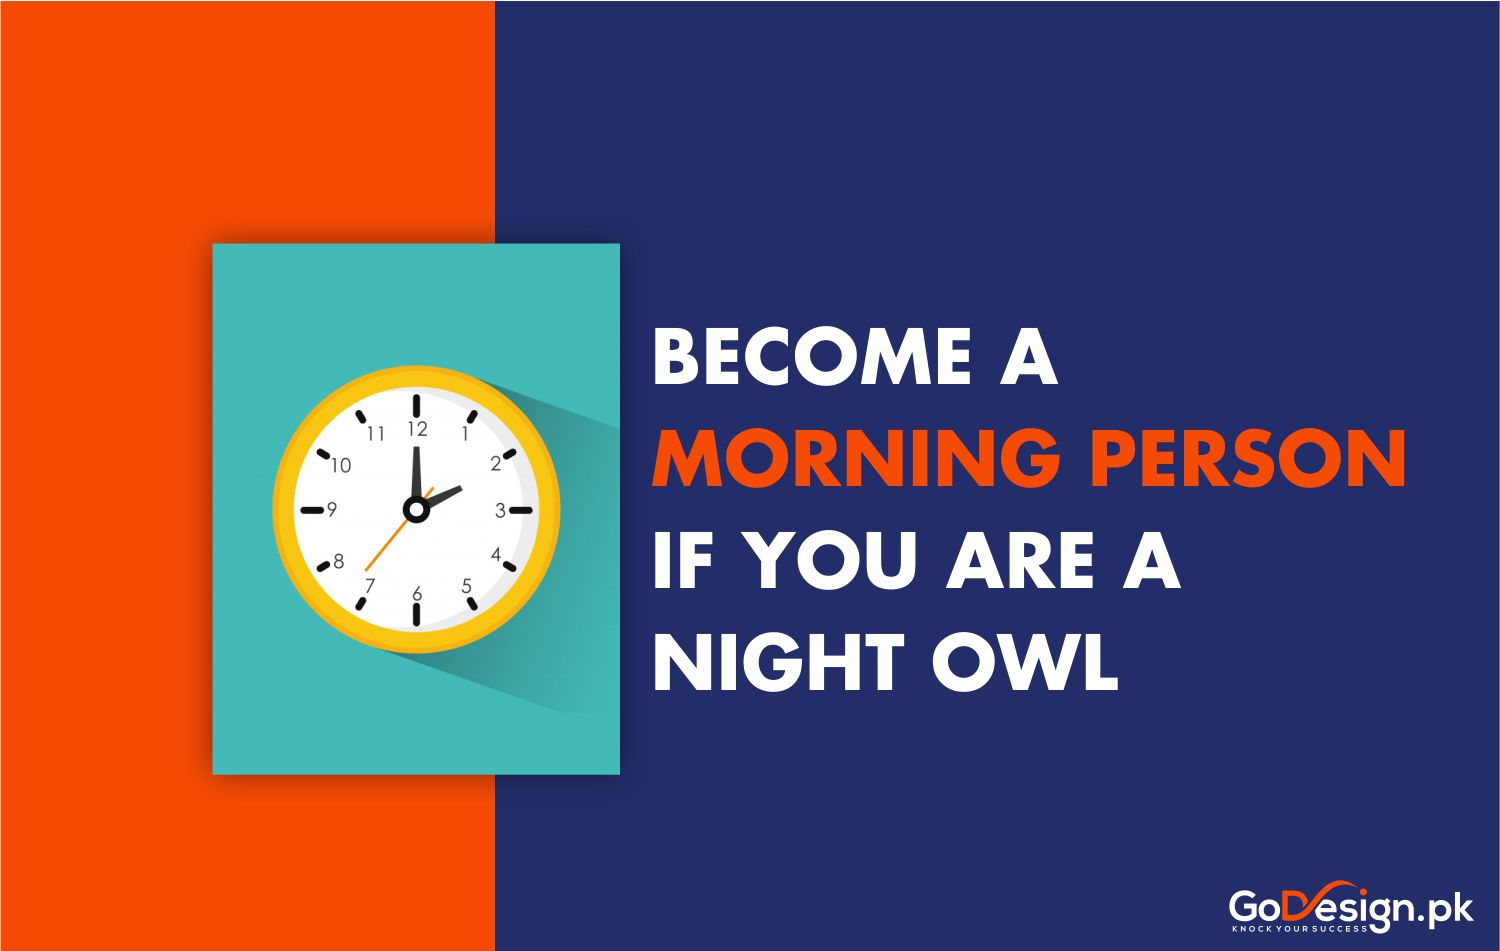 Become a morning person if you are night owl